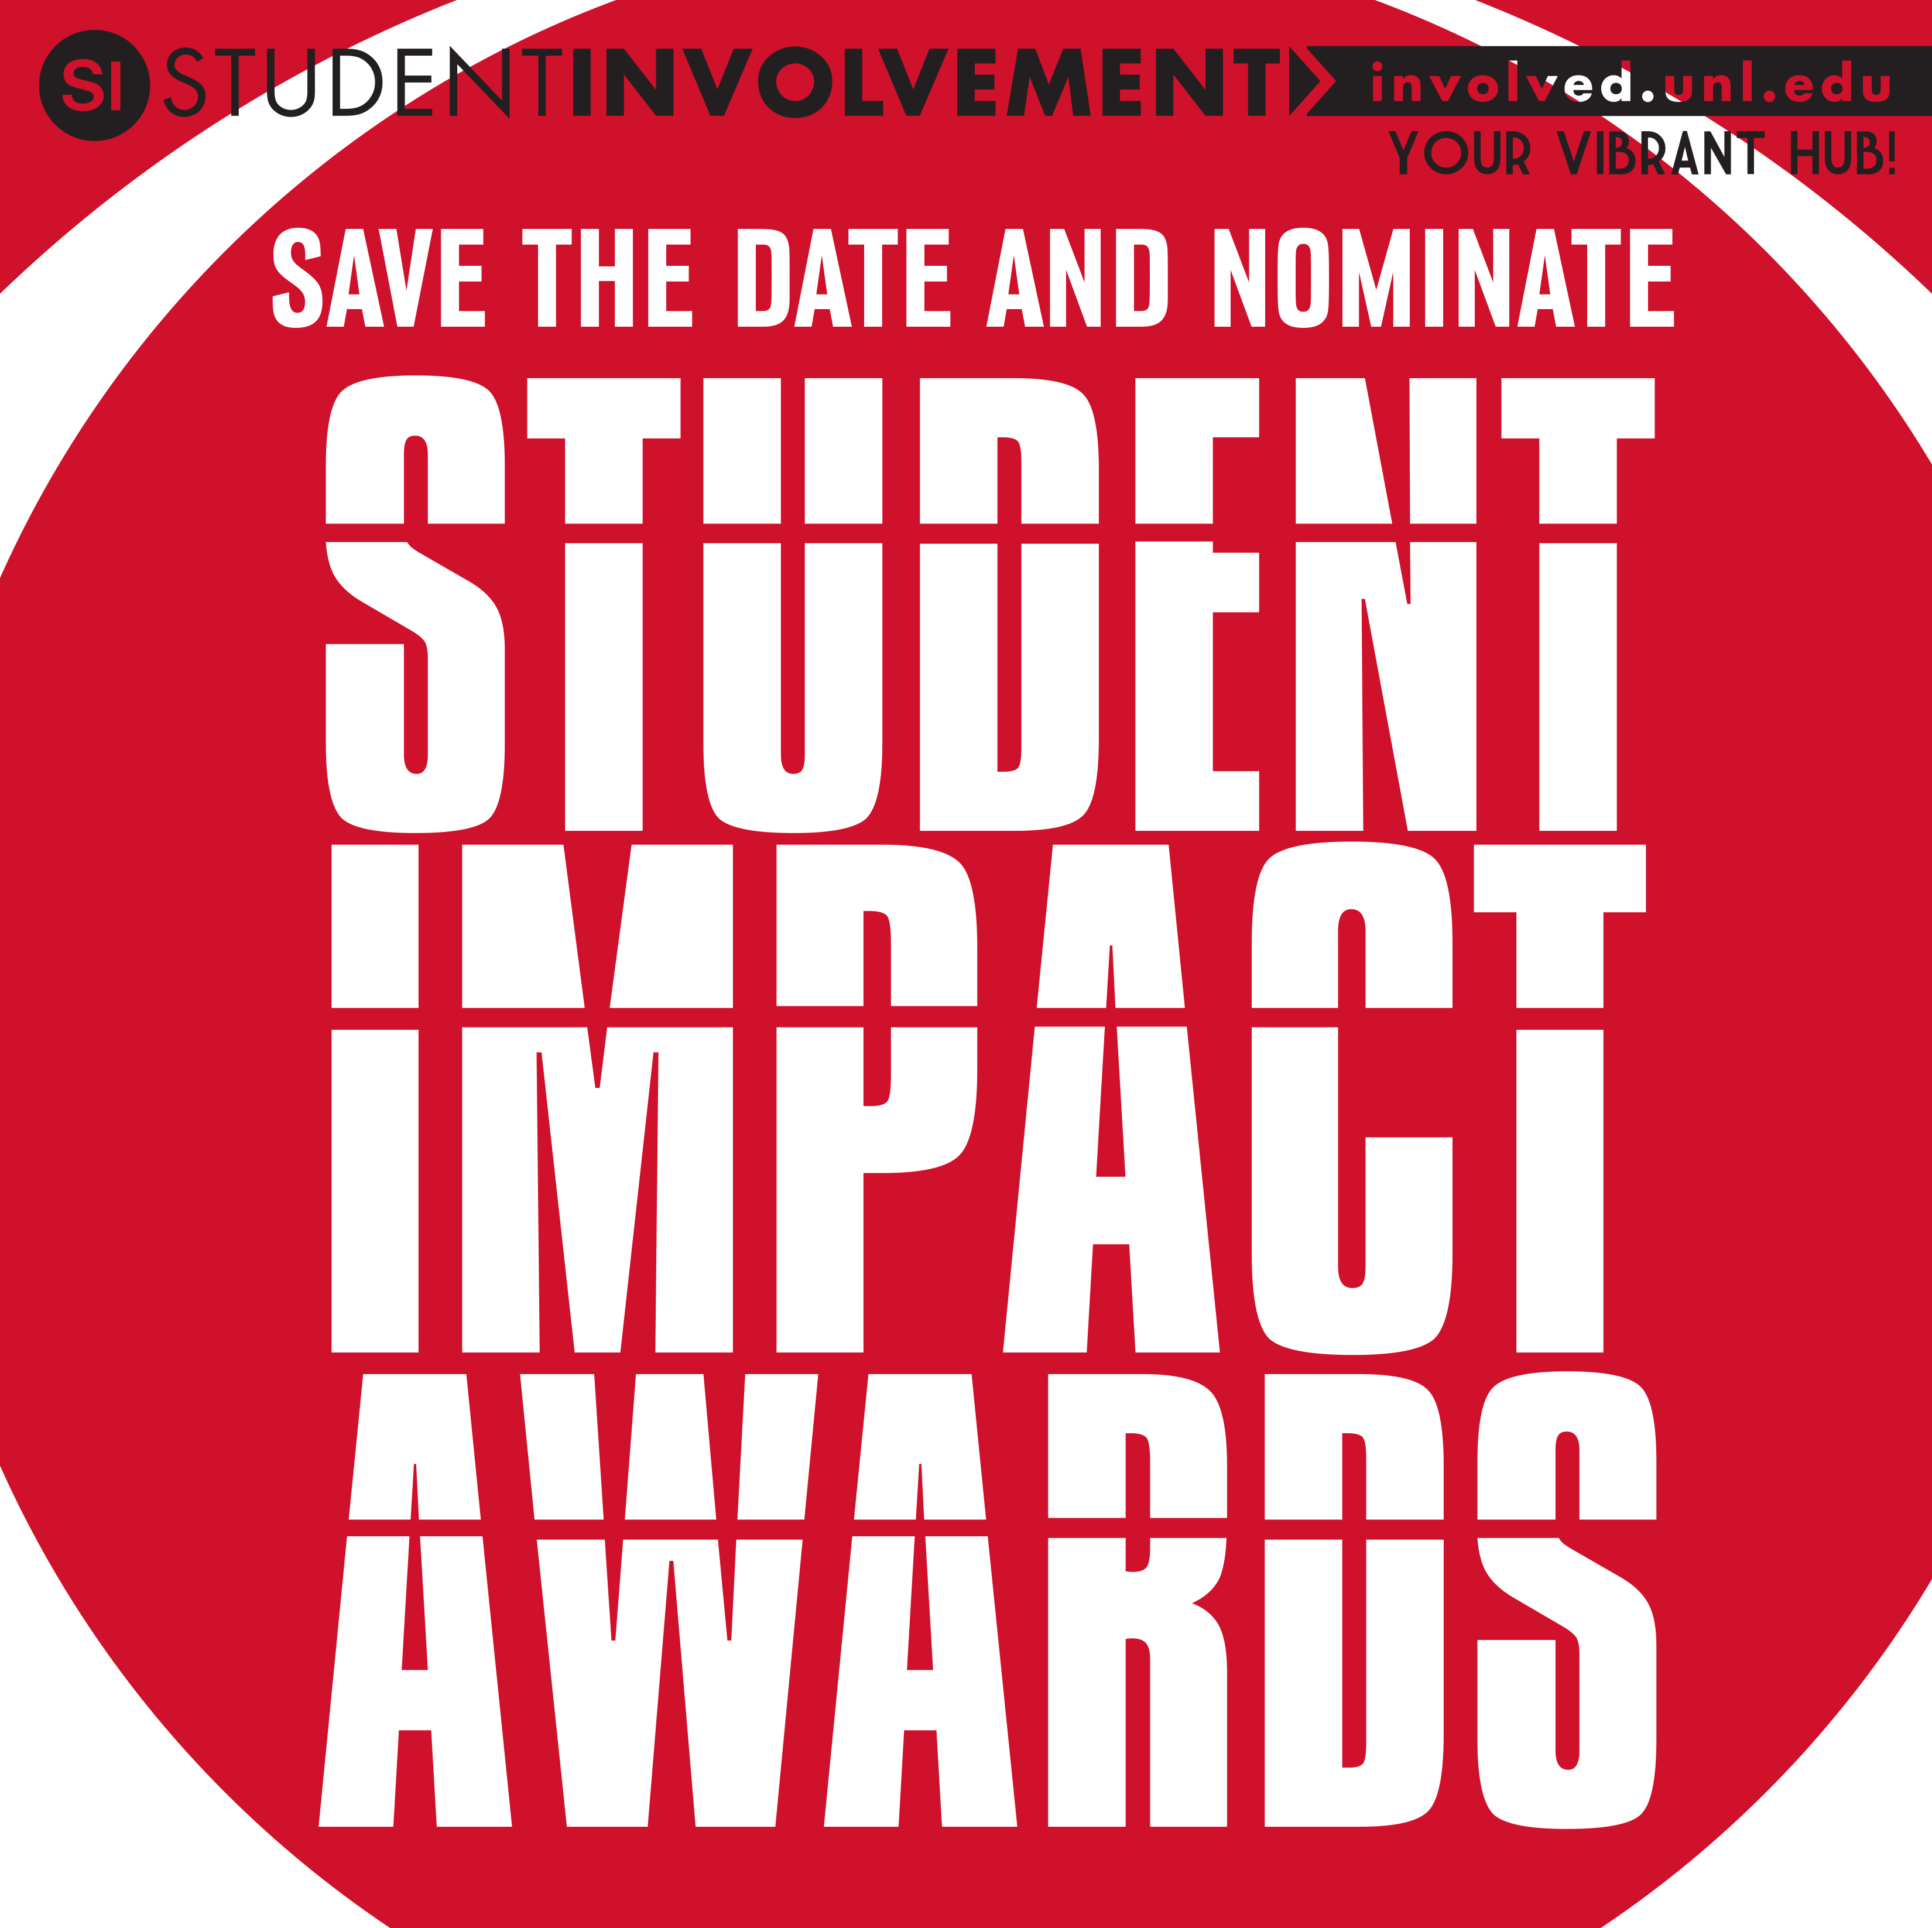 Nominations are due March 17